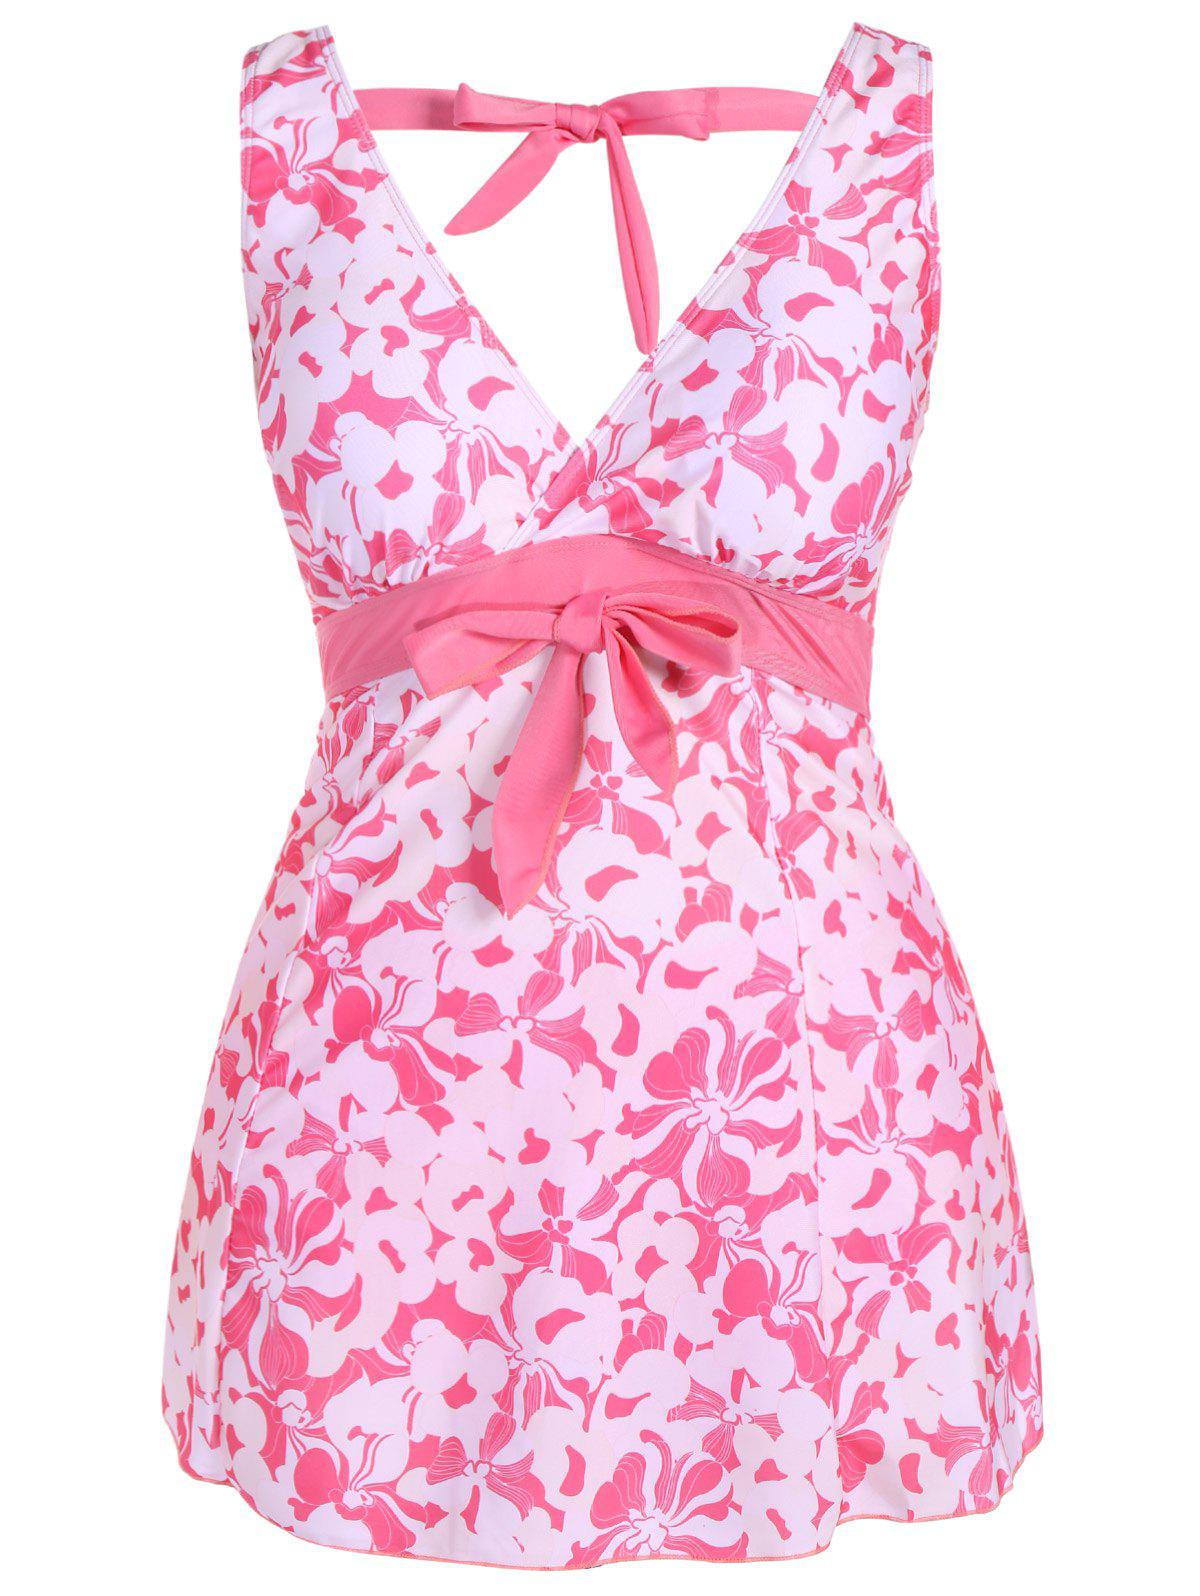 Fashionable Plunging Neck Bowknot Plus Size Women's Swimsuit - PINK 5XL